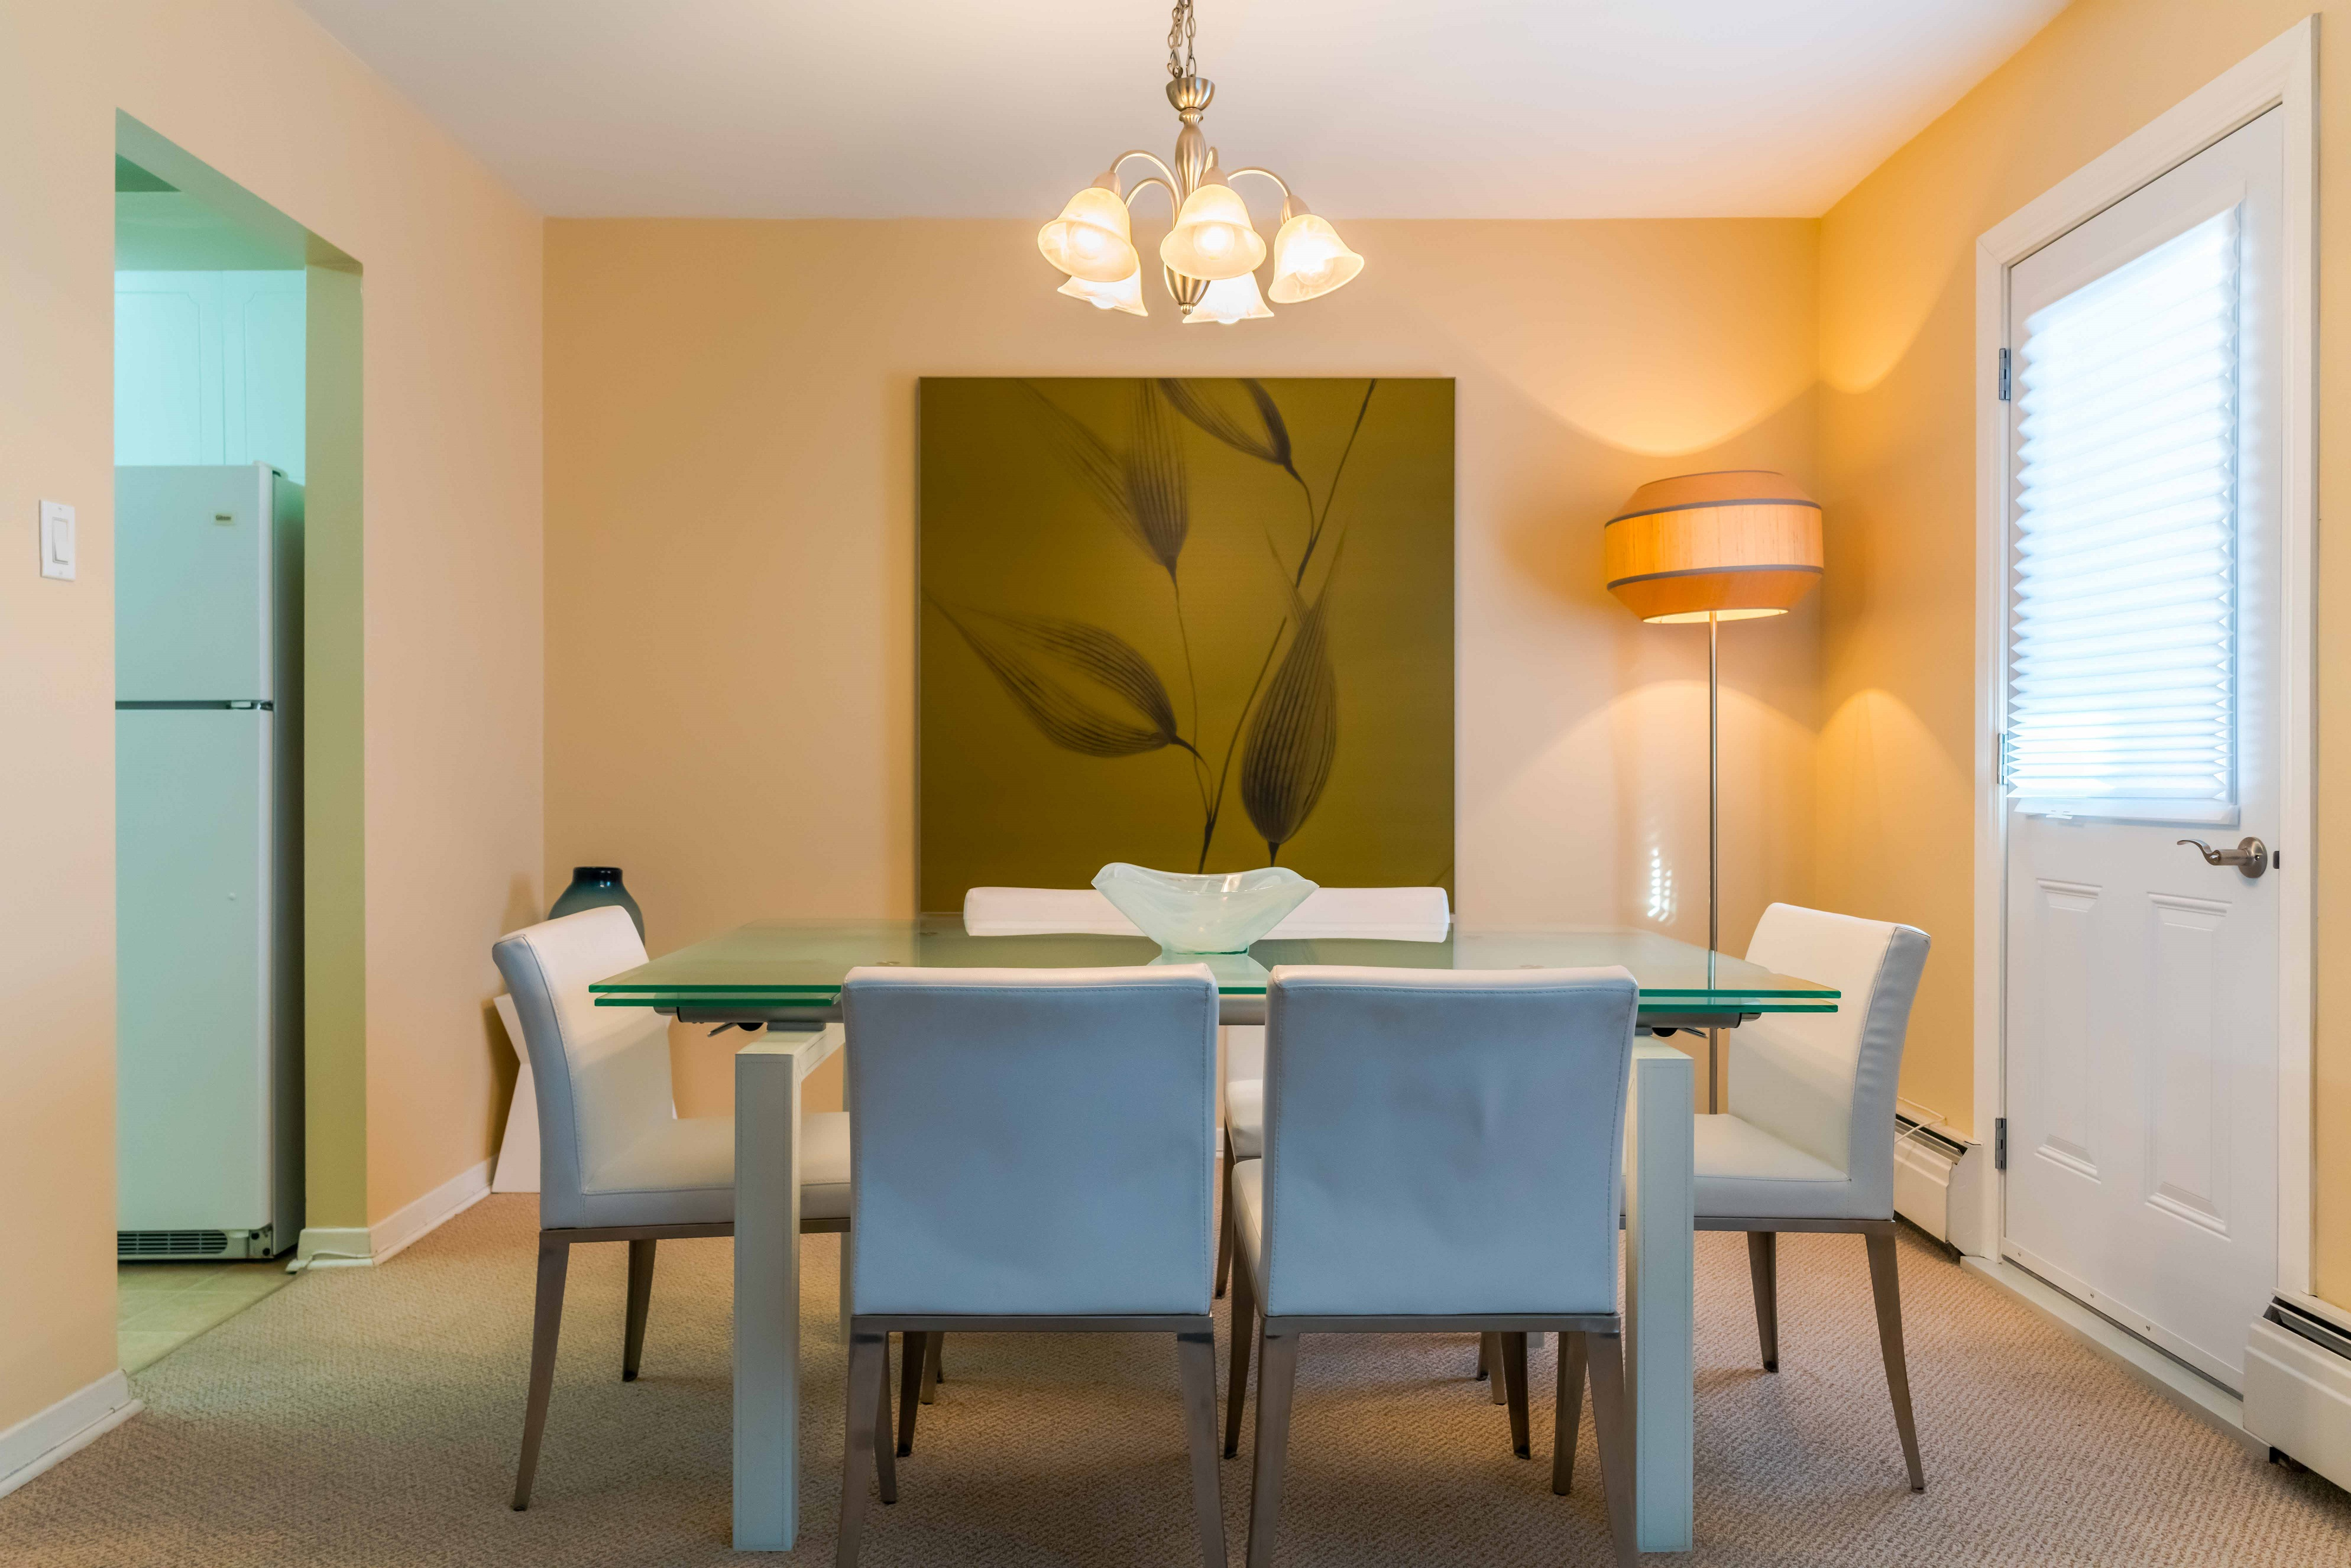 Apartments For Rent Winnipeg - 555 River Apartment Dining Room